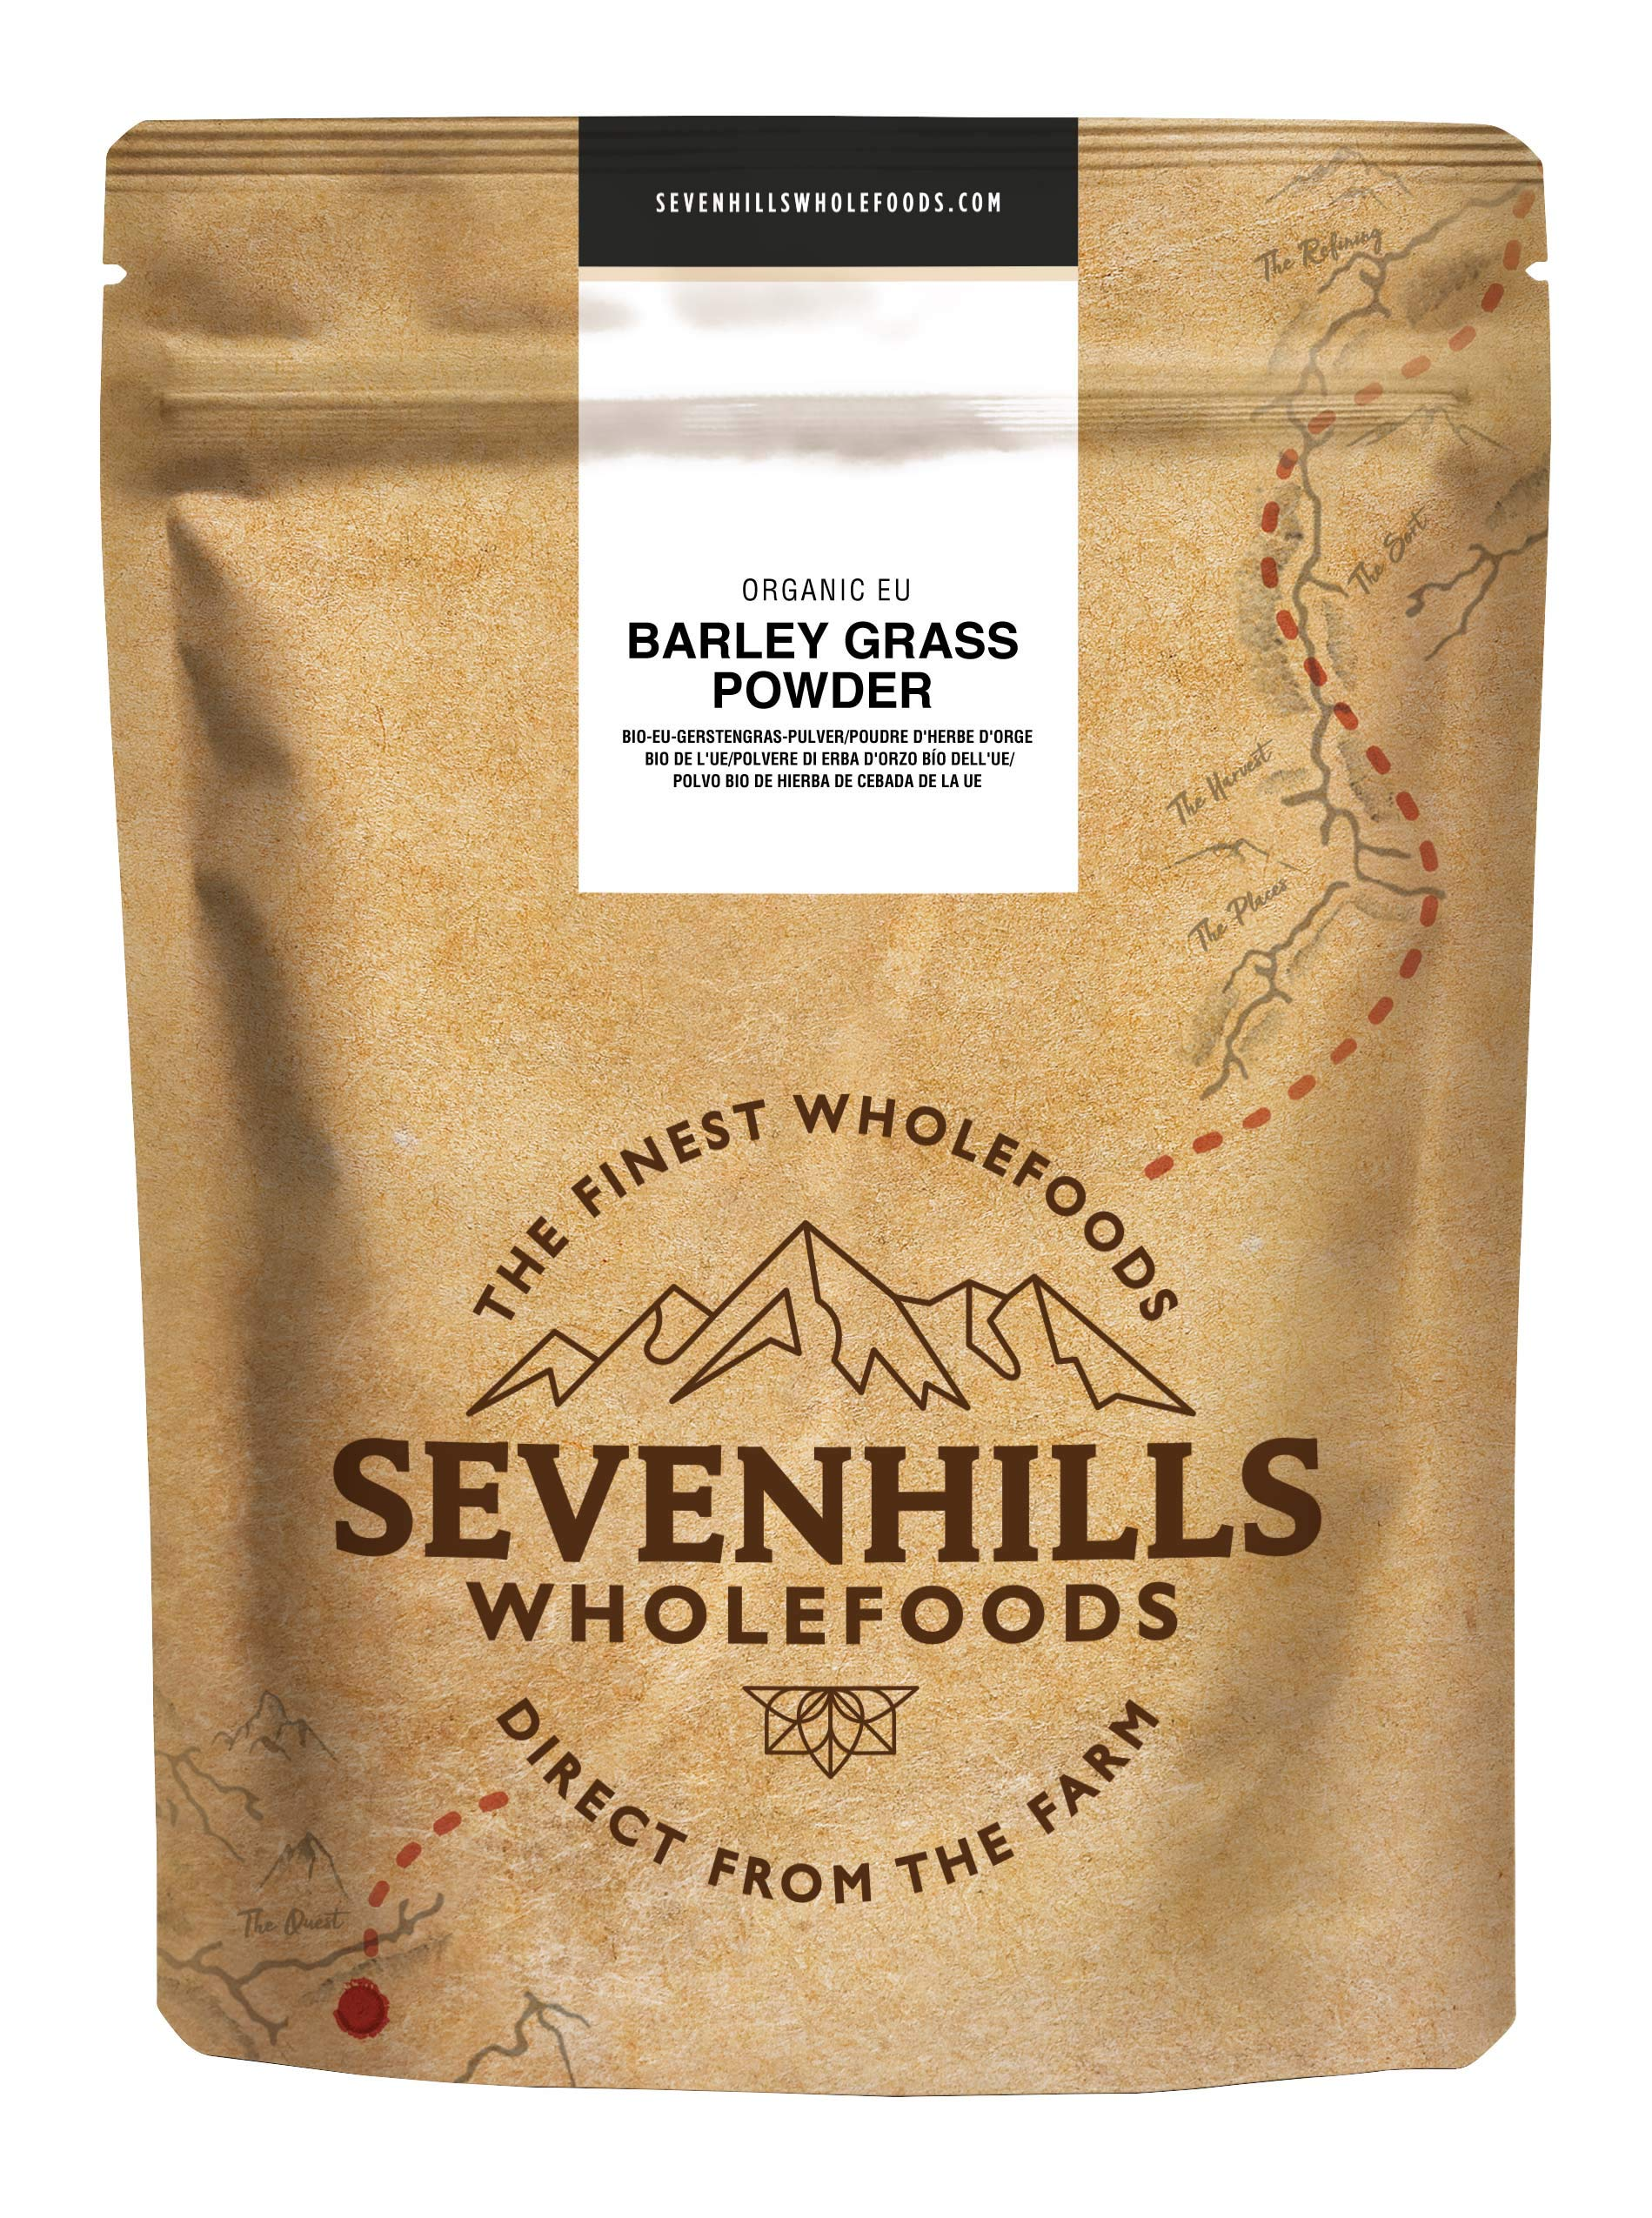 Sevenhills Wholefoods Organic European Barley Grass Powder 1kg product image